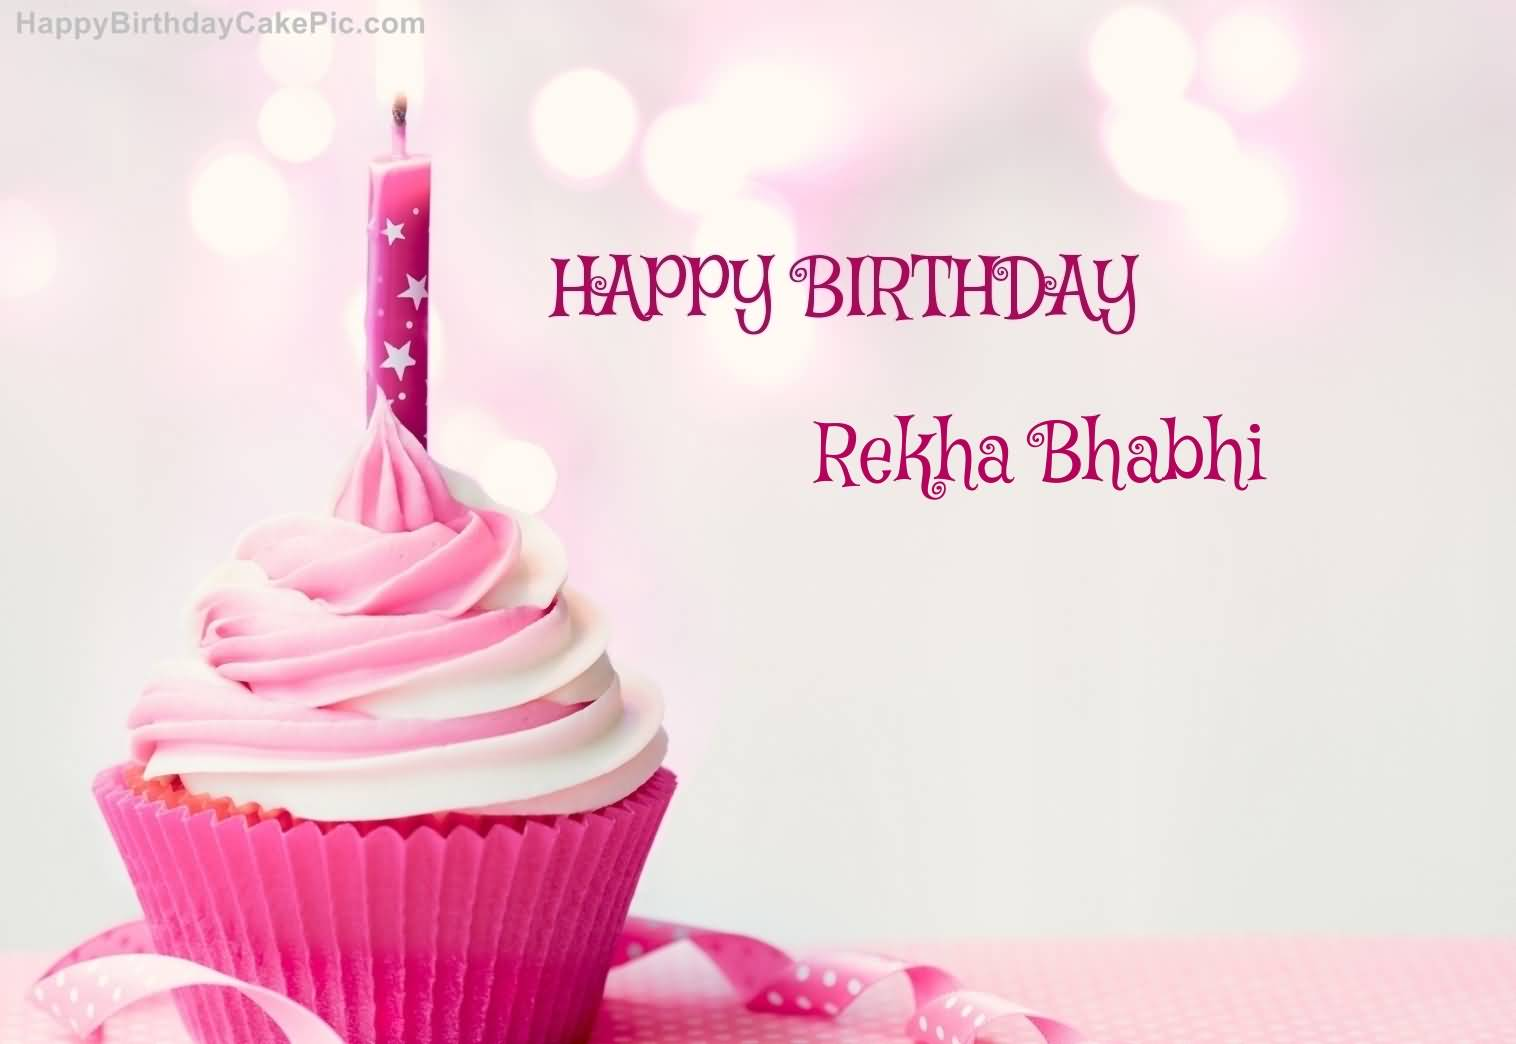 Happy Birthday Rekha Bhabhi